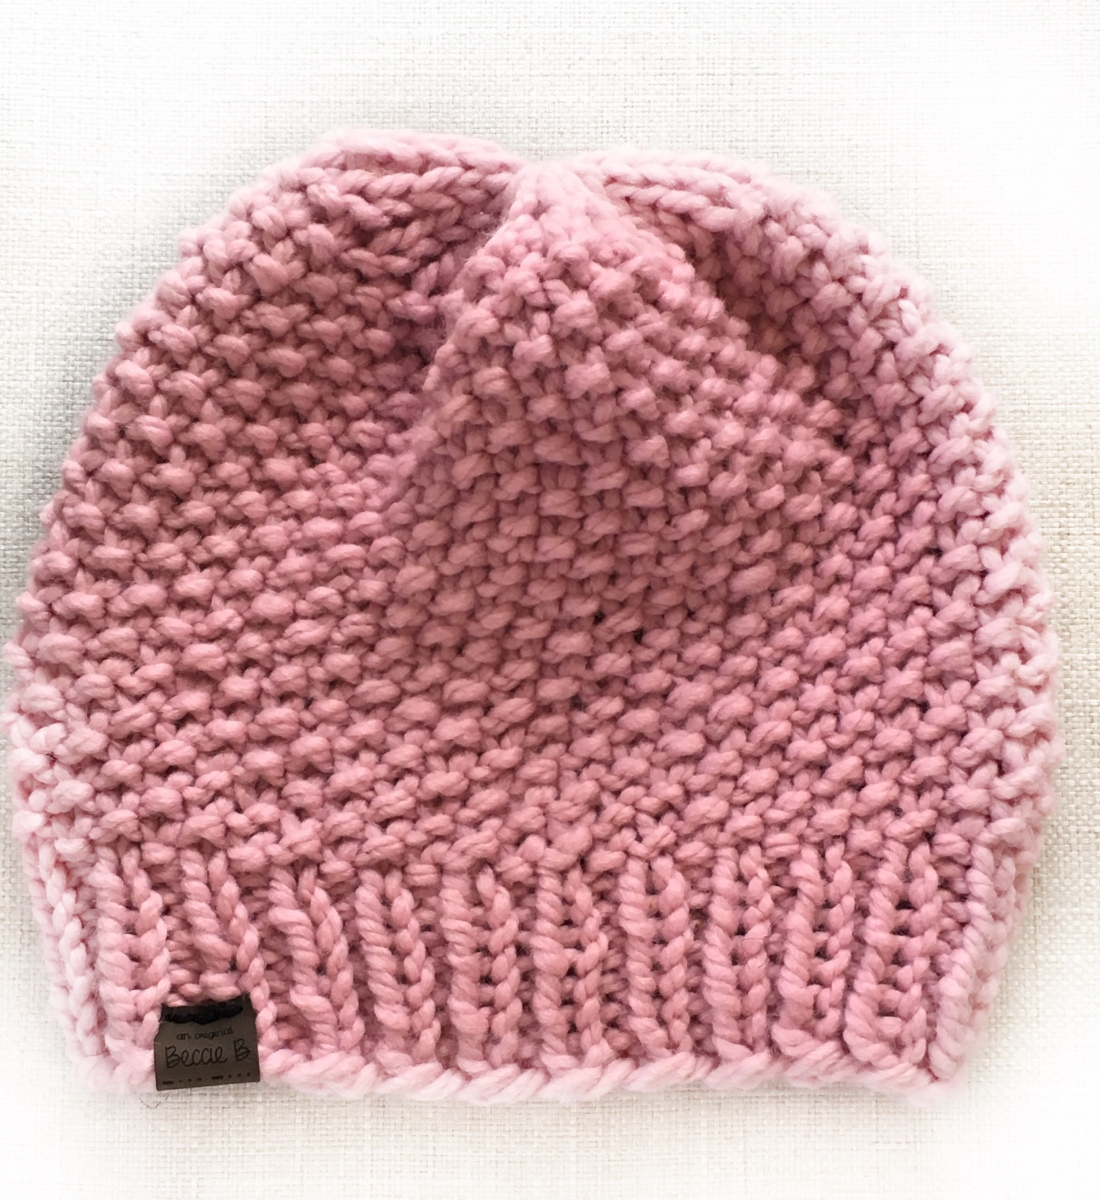 Free Knitting Pattern Simple Seed Stitch Beanie Hat